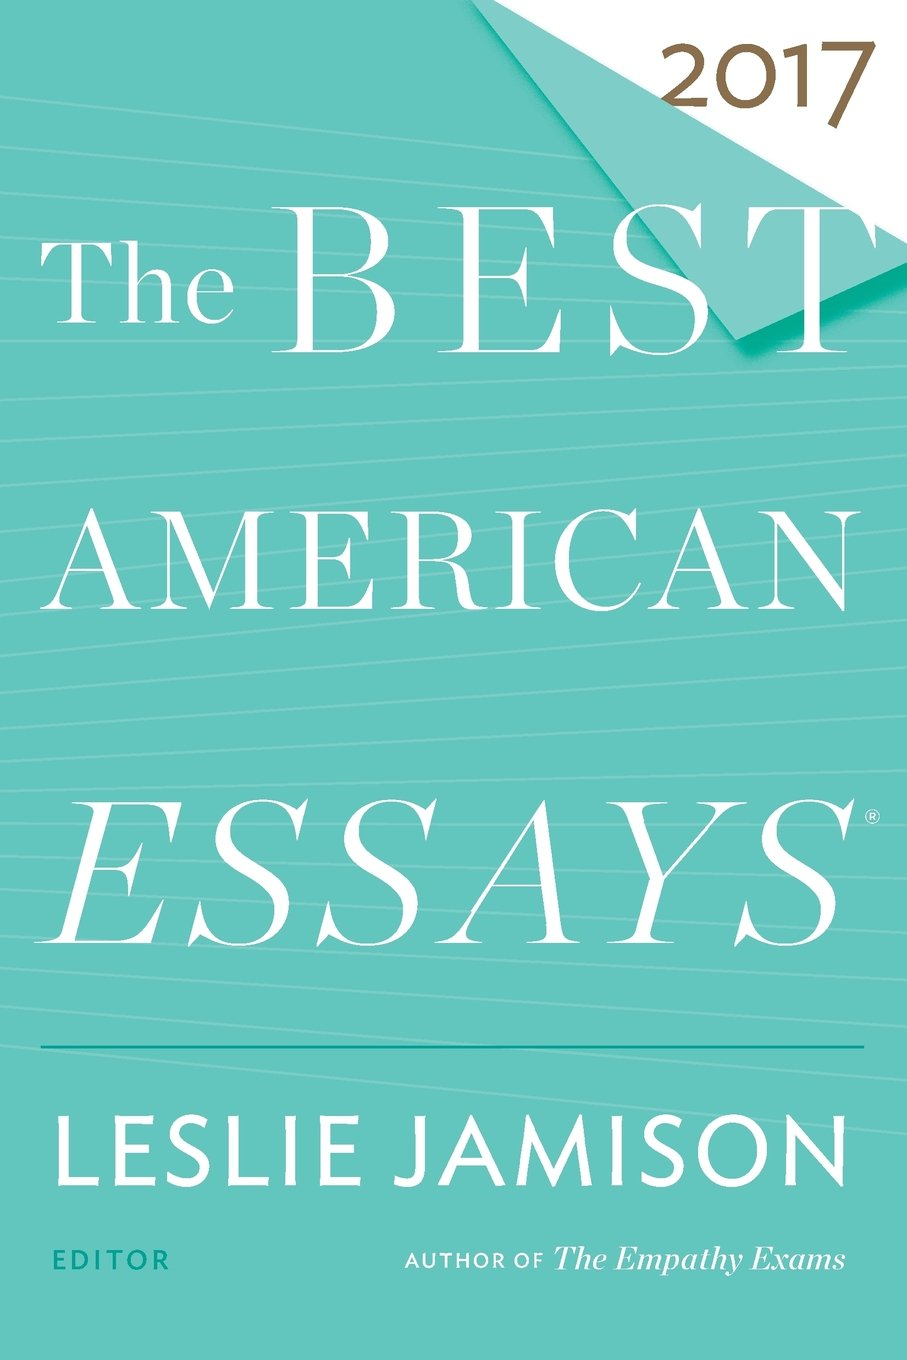 001 61tzl Nruvl Essay Example The Best American Wonderful Essays Of Century Table Contents 2013 Pdf Download Full